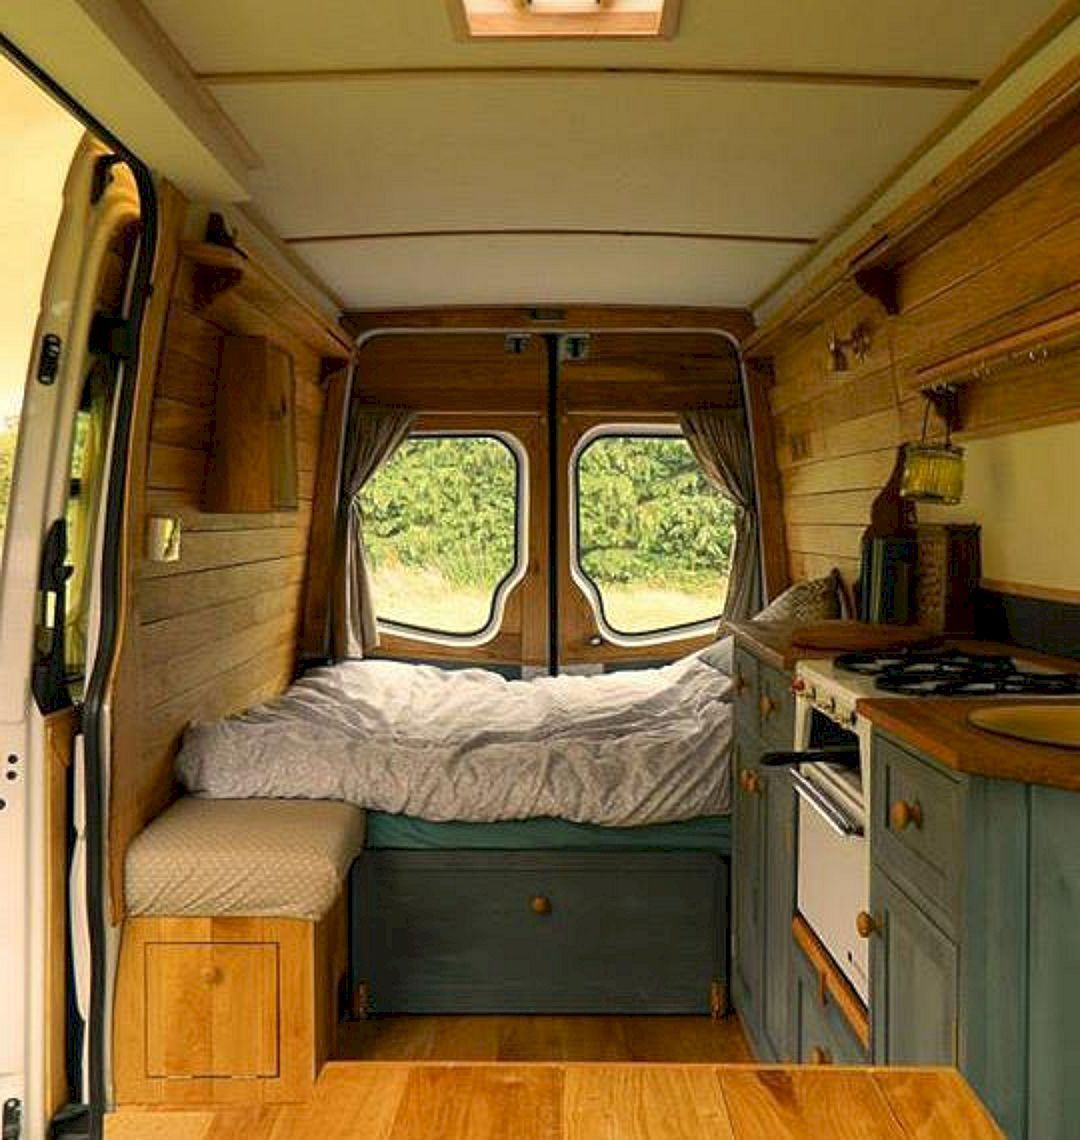 The Best DIY Camper Interior Ideas You Can Try Right Now No 42 DECOOR